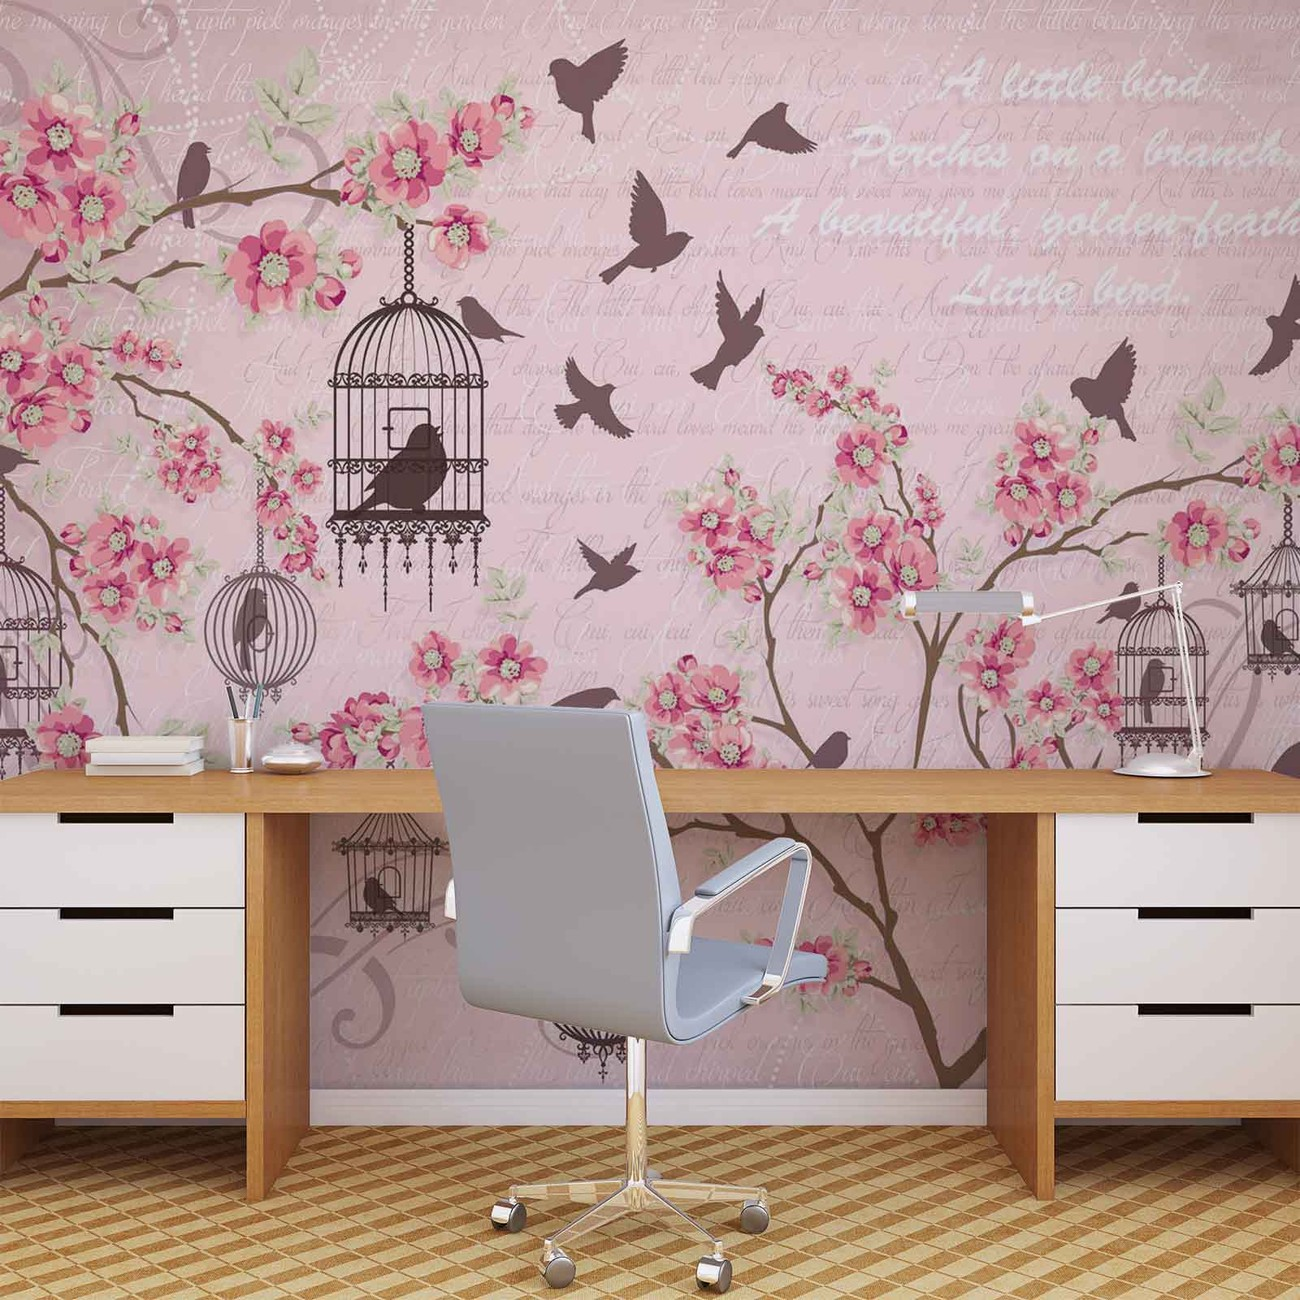 Birds cherry blossom pink wall paper mural buy at for Cherry blossom mural on walls